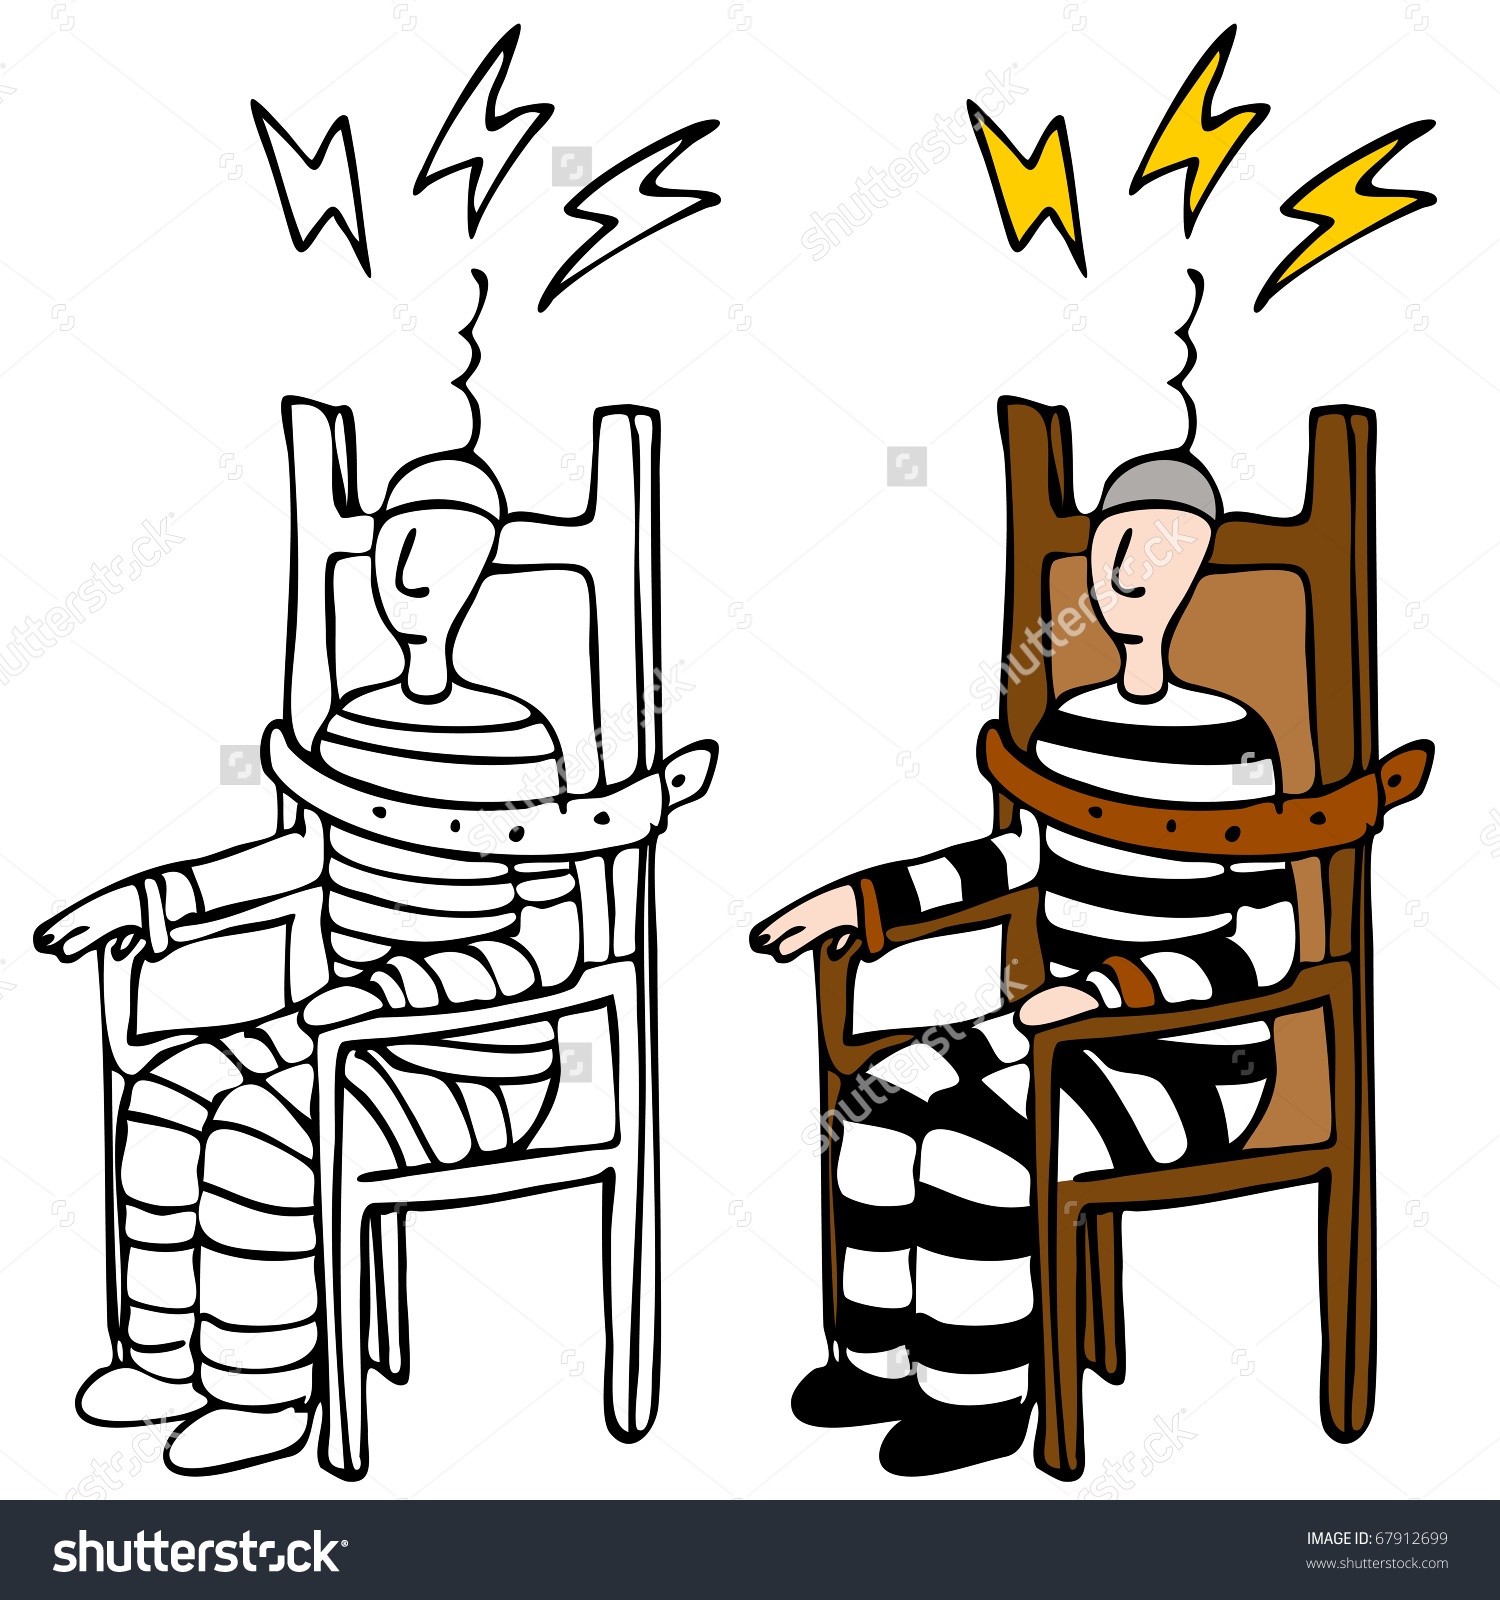 electric chair drawing. image man electric chair stock vector 67912699. drawing